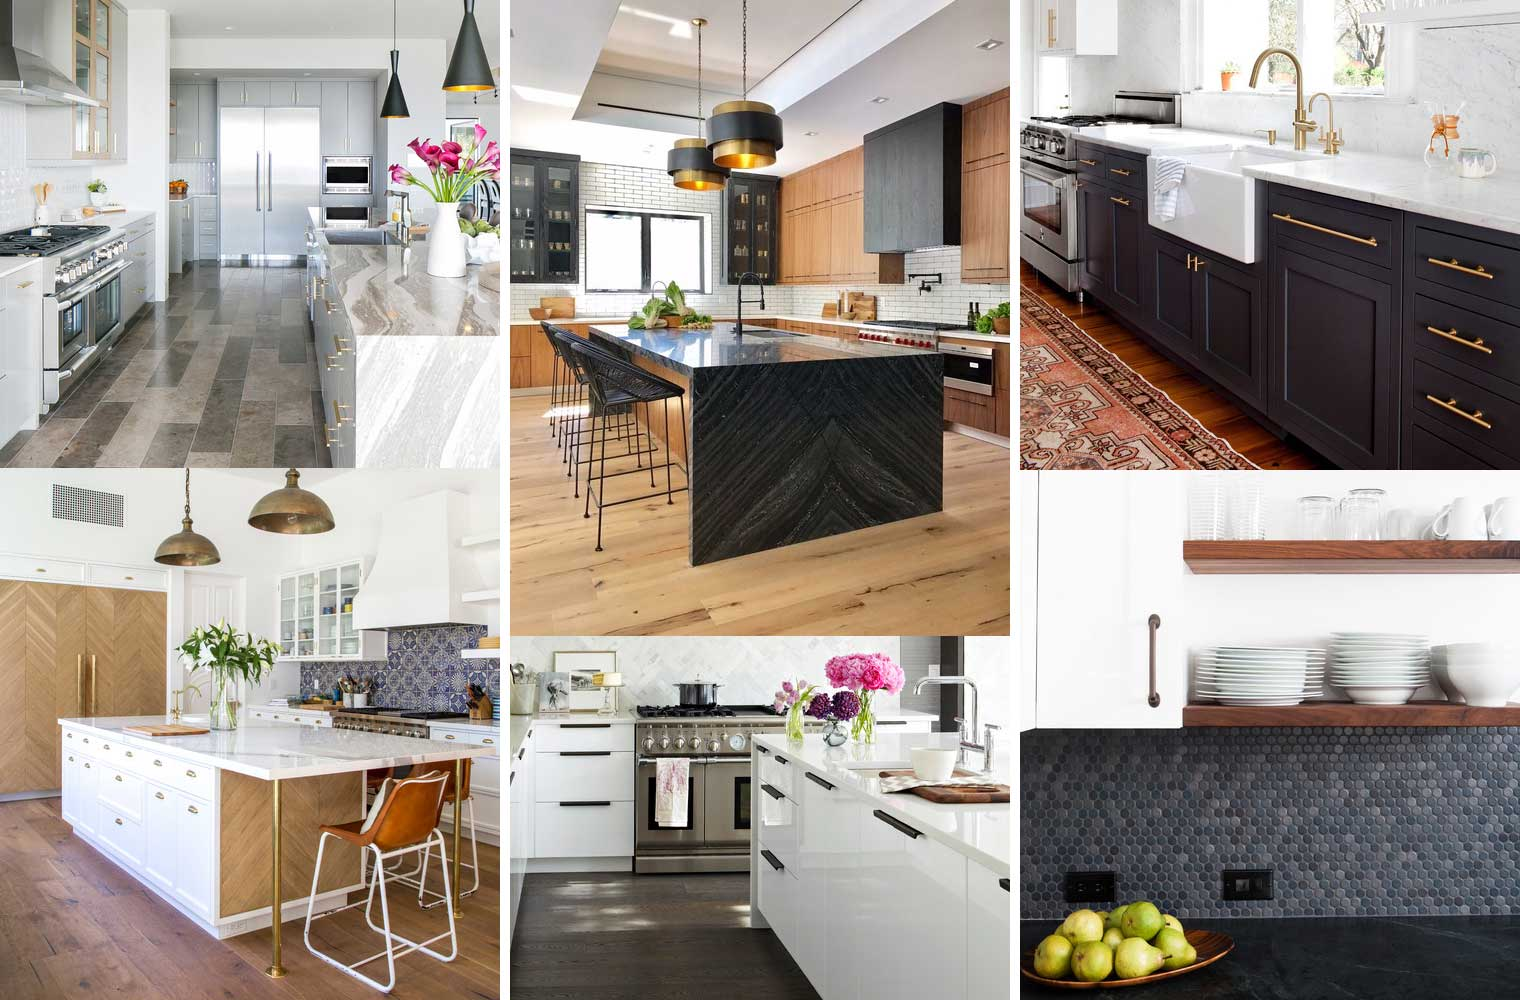 9 Design Trends for Your Kitchen That You'll Love   Home ...